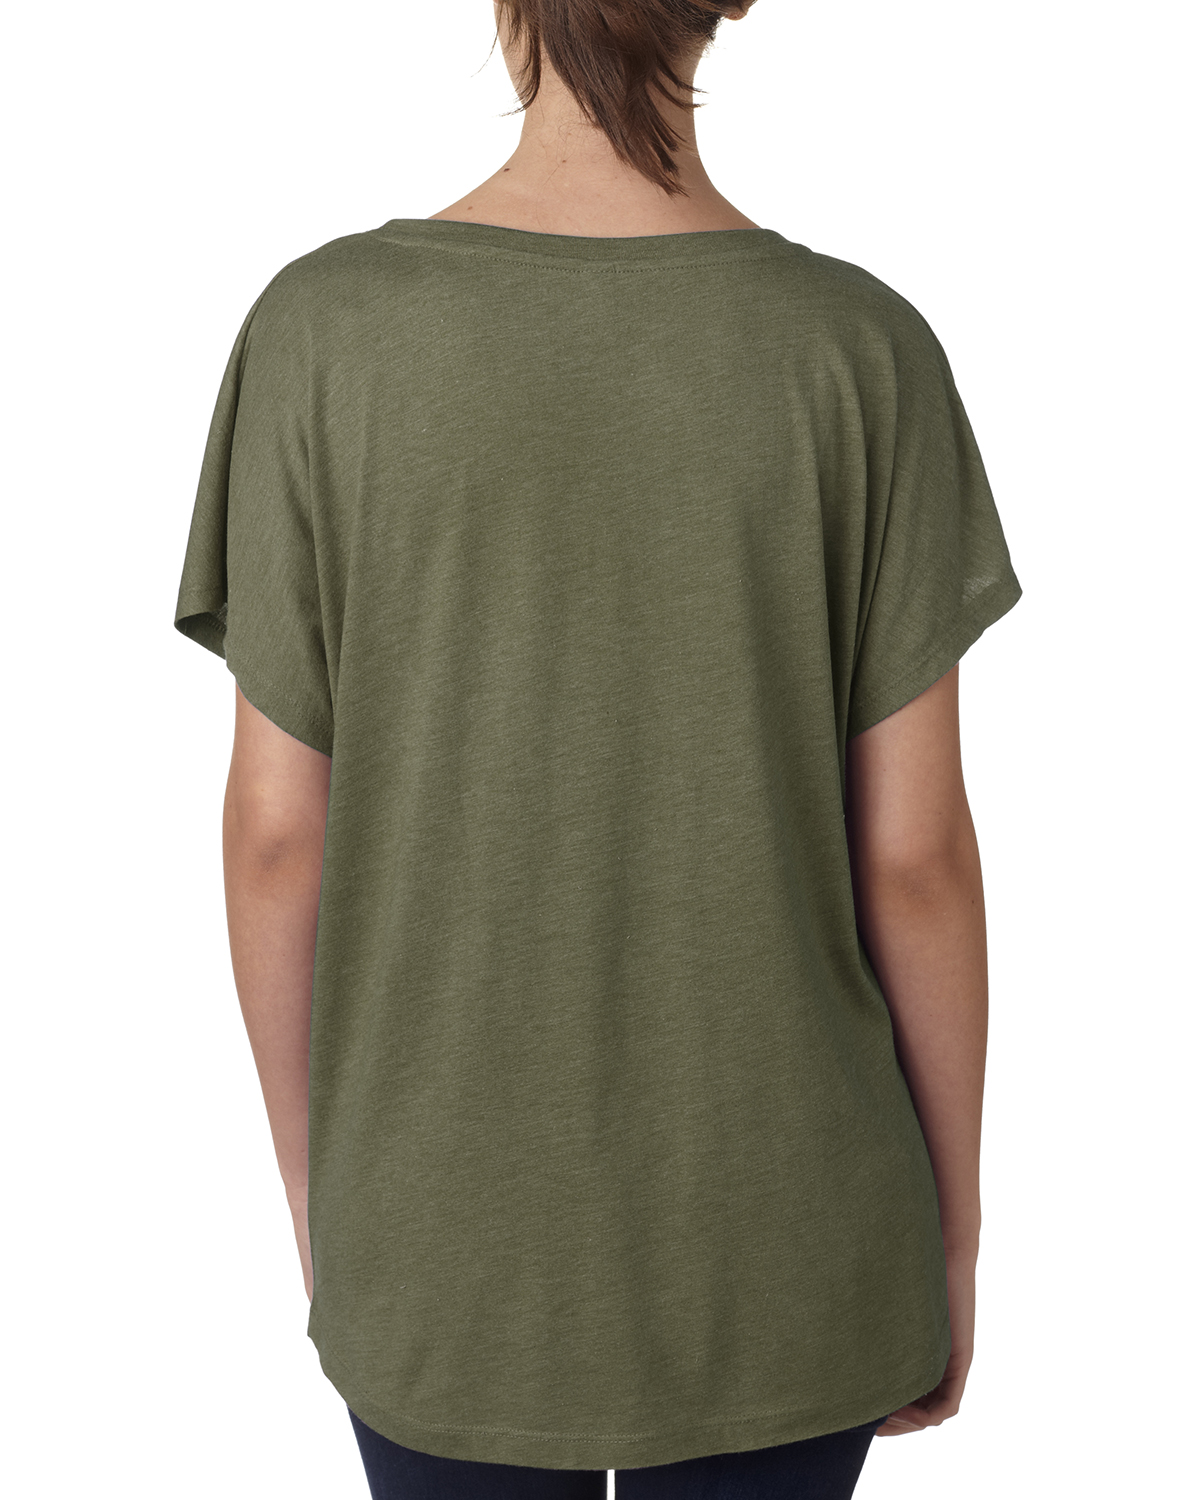 NEW-Next-Level-Junior-Fit-Triblend-Dolman-Sleeve-Relexed-Fit-T-Shirt-B-6760 thumbnail 12